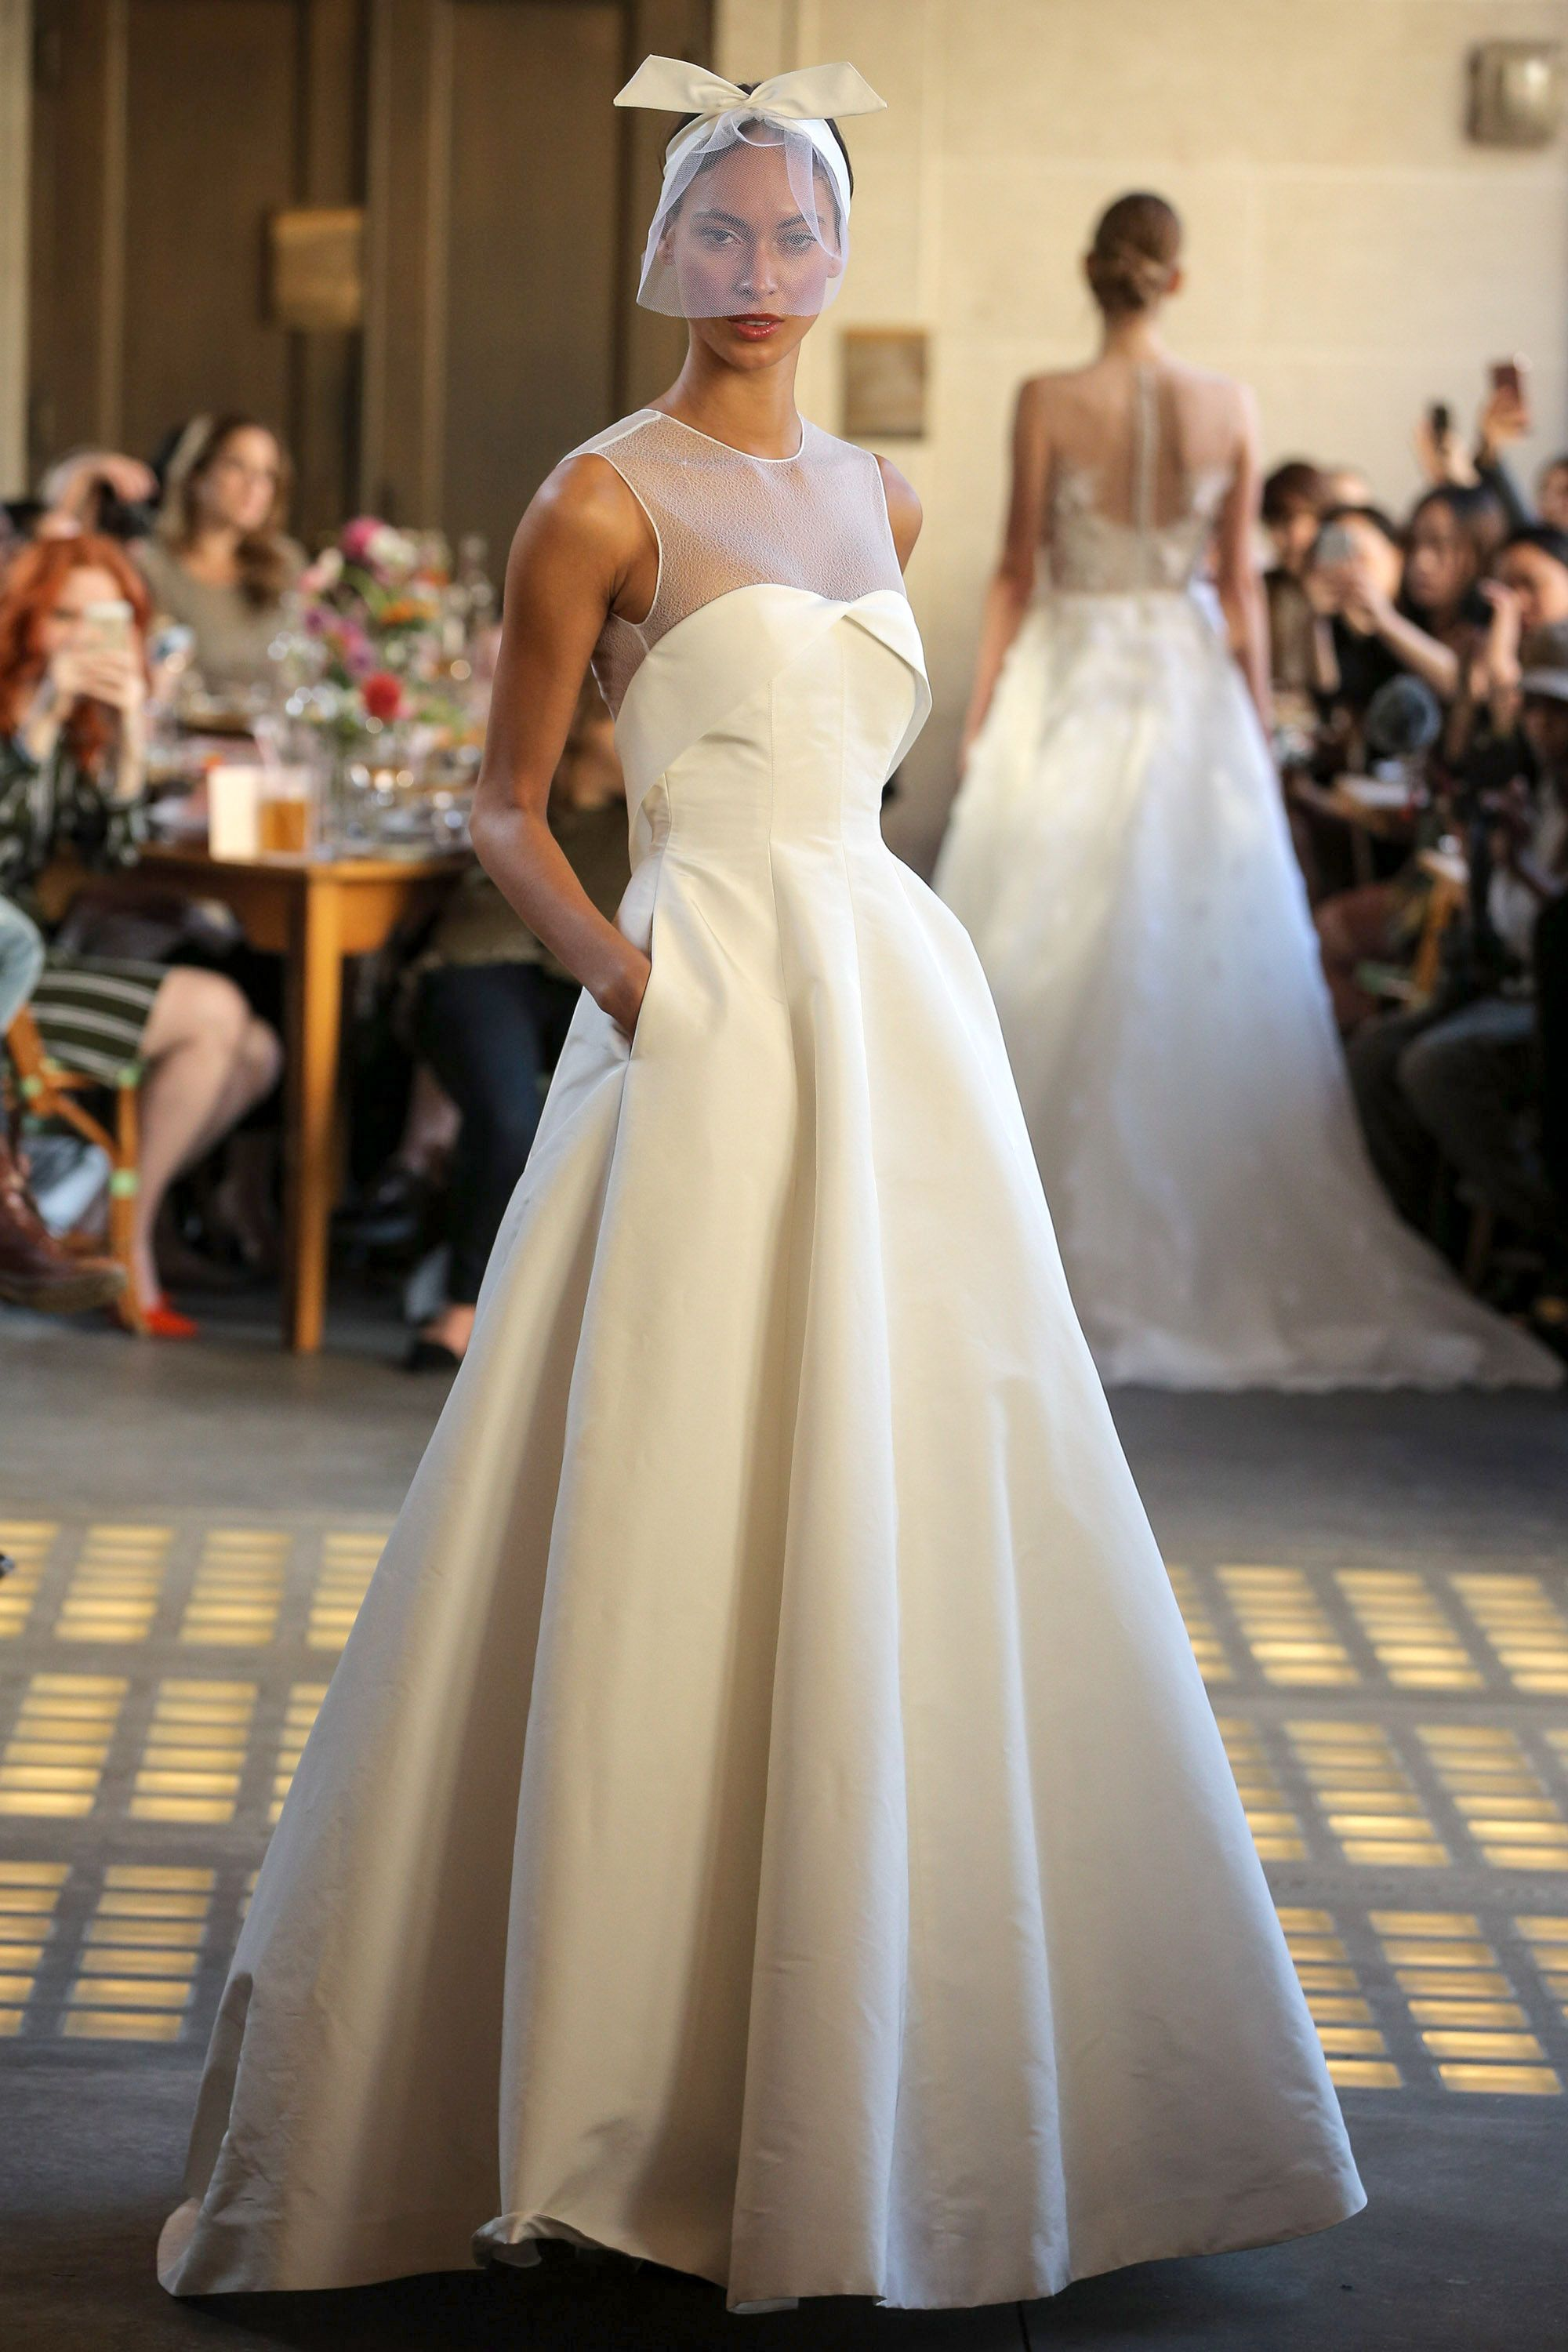 photo Best of Bridal Fashion Week: 25 Wedding Gowns From Marchesa, Vera Wang, andMore